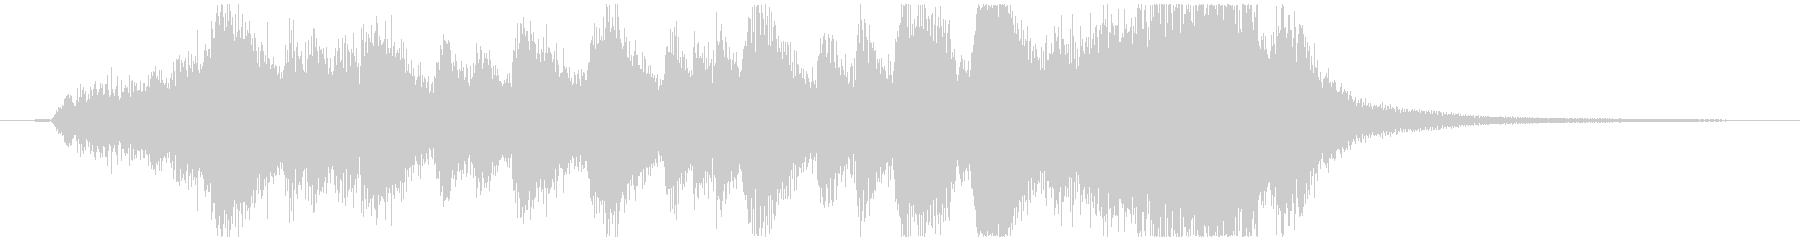 Luxurious fanfare which is most suitable at the time of appearance!'s unreproduced waveform